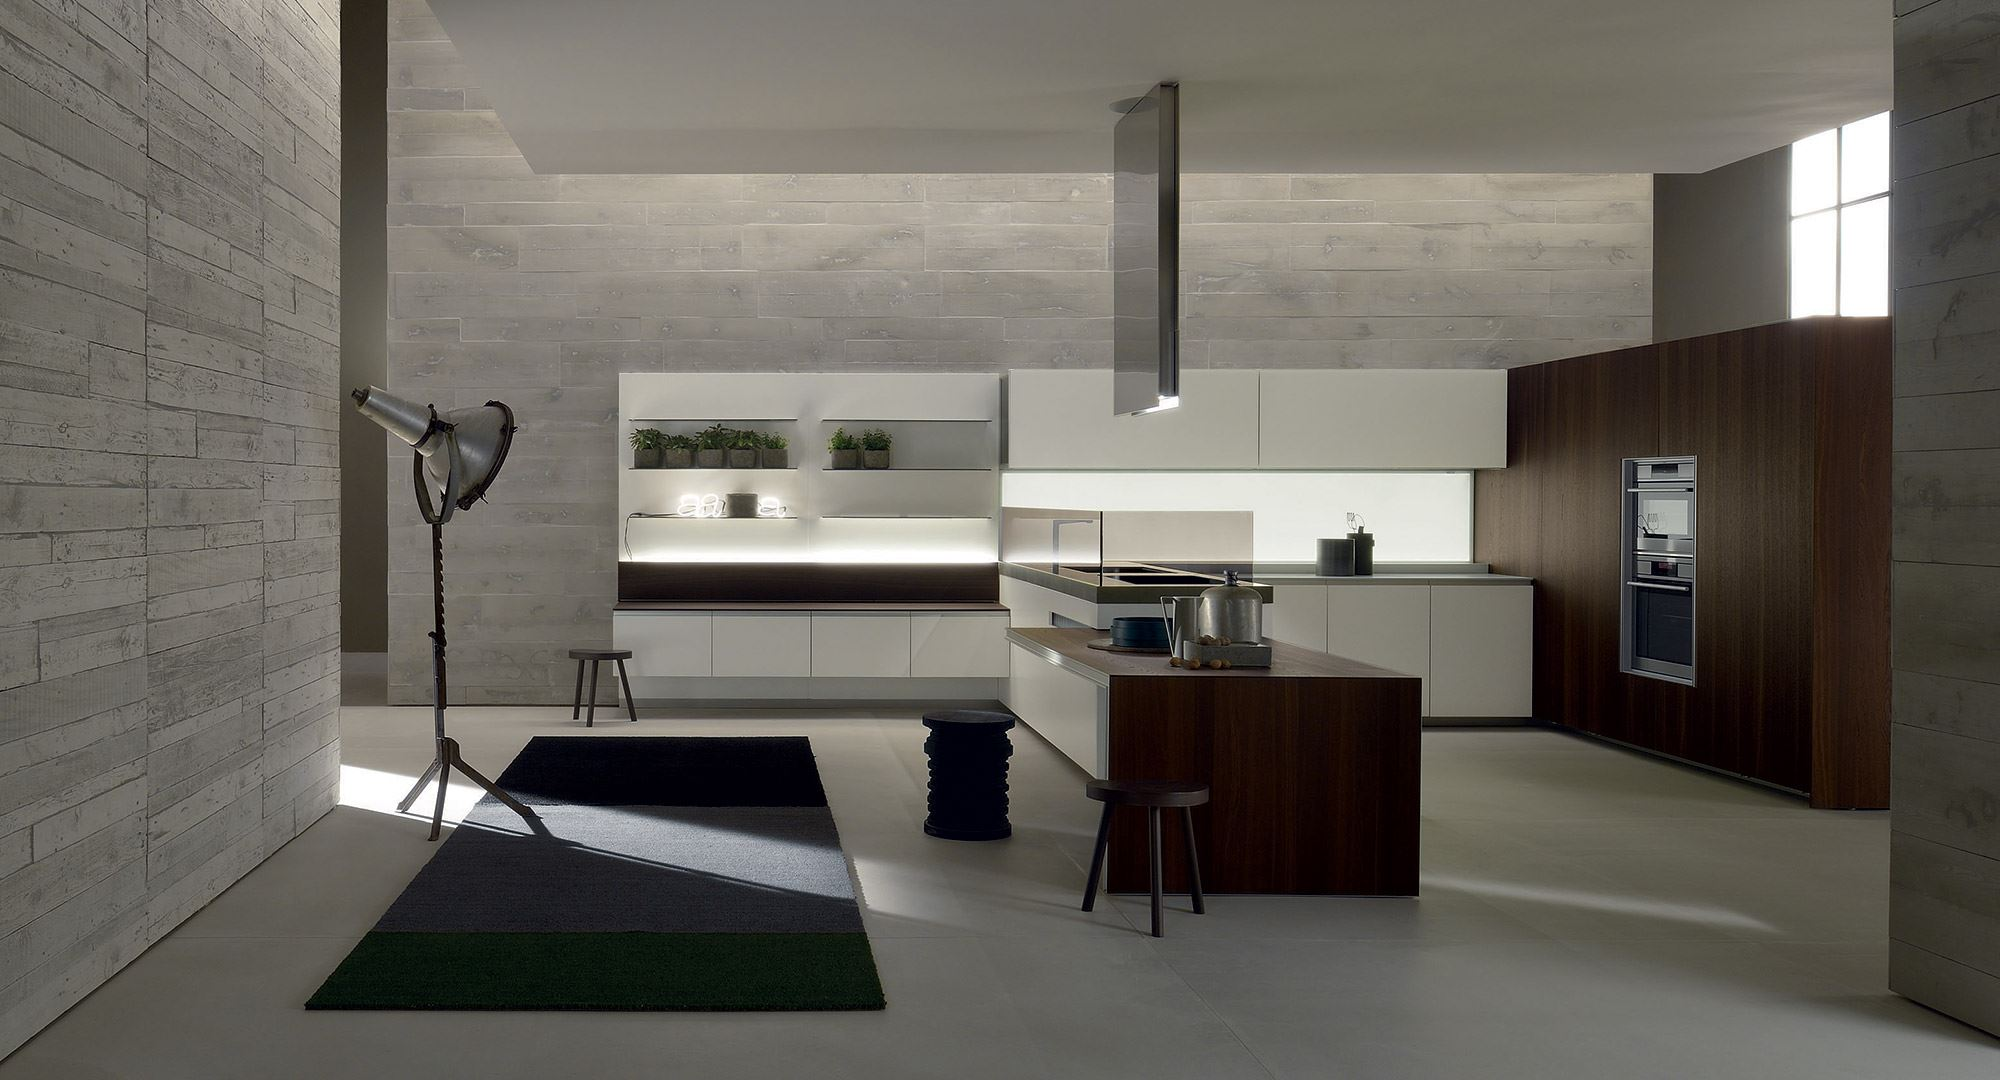 Cucine ernestomeda roma for Cucine italiane design moderne